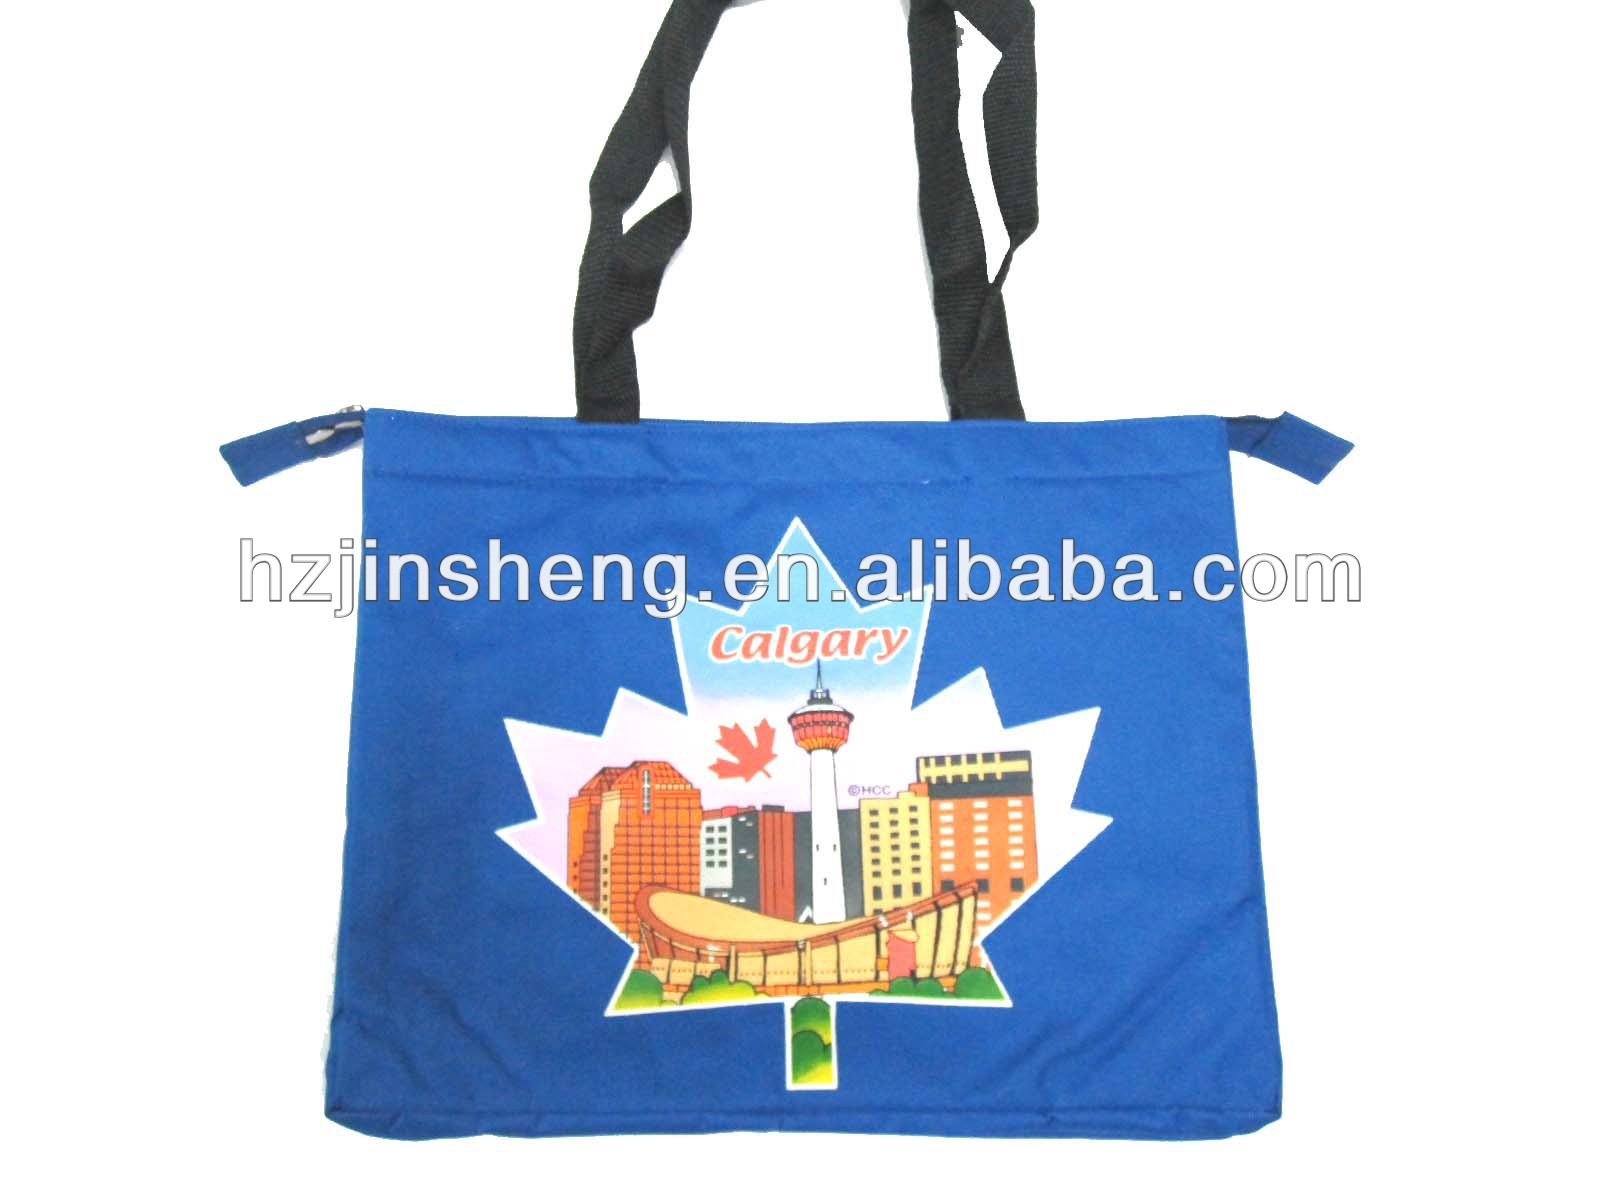 Blue durable leisure picnic tote cooler bag for promotion